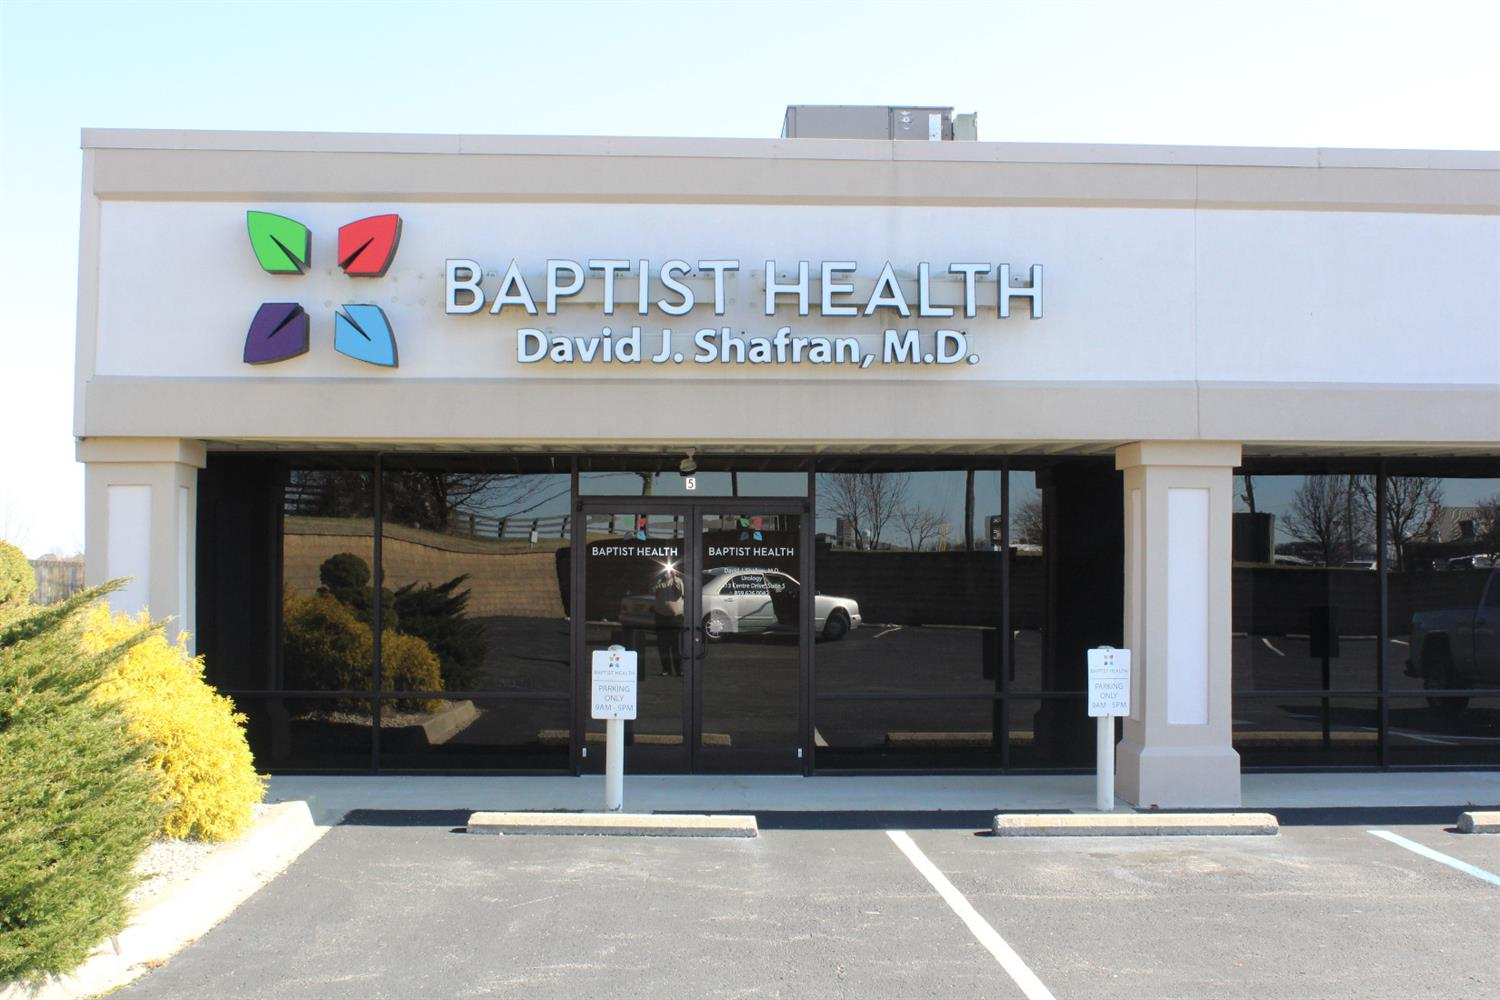 For%20Lease%201850%20sq%20ft%20Medical%20Office%20space%20(Unit%20#5)or%20any%20type%20of%20business%20wanting%20space%20for%20a%20professional%20office,%20formerly%20Urology%20office%20for%20Baptist%20Health%20$11.50%20per%20sq.%20ft.%20It%20is%20turn%20key%20&%20ready%20a%20specialty%20doctor,%20pediatrician,%20chiropractor,%20etc.%20Many%20features:%20nice%20lobby%20area,%20registration%20area%20to%20check%20in/out%20patients%20or%20customers,%20file%20rm,%20laboratory%20rm,%203%20exam%20rms,%20lg%20break%20rm%20w/kitchenette,%202%20BA%20rms%20&%20office%20w/private%20bath%20&%20shower.%20A%20perfect%20turn%20key%20office%20space%20for%20any%20type%20of%20professional%20business.%20Office%20has%20a%20rear%20entry%20&%20comes%20w/lg,%20lighted%20square%20elevated%20pole%20sign,%20plus%20small%20marquee%20sign%20that%20sets%20on%20the%20road.%20Great%20parking%20&%20excellent,%20convenient%20location%20right%20off%20EKU%20By-Pass,%20across%20the%20street%20from%20Kroger%20&%20behind%20Sonny's%20BBQ.%20%20Very%20motivated,%20lease%20amount%20is%20subject%20to%20negotiation.